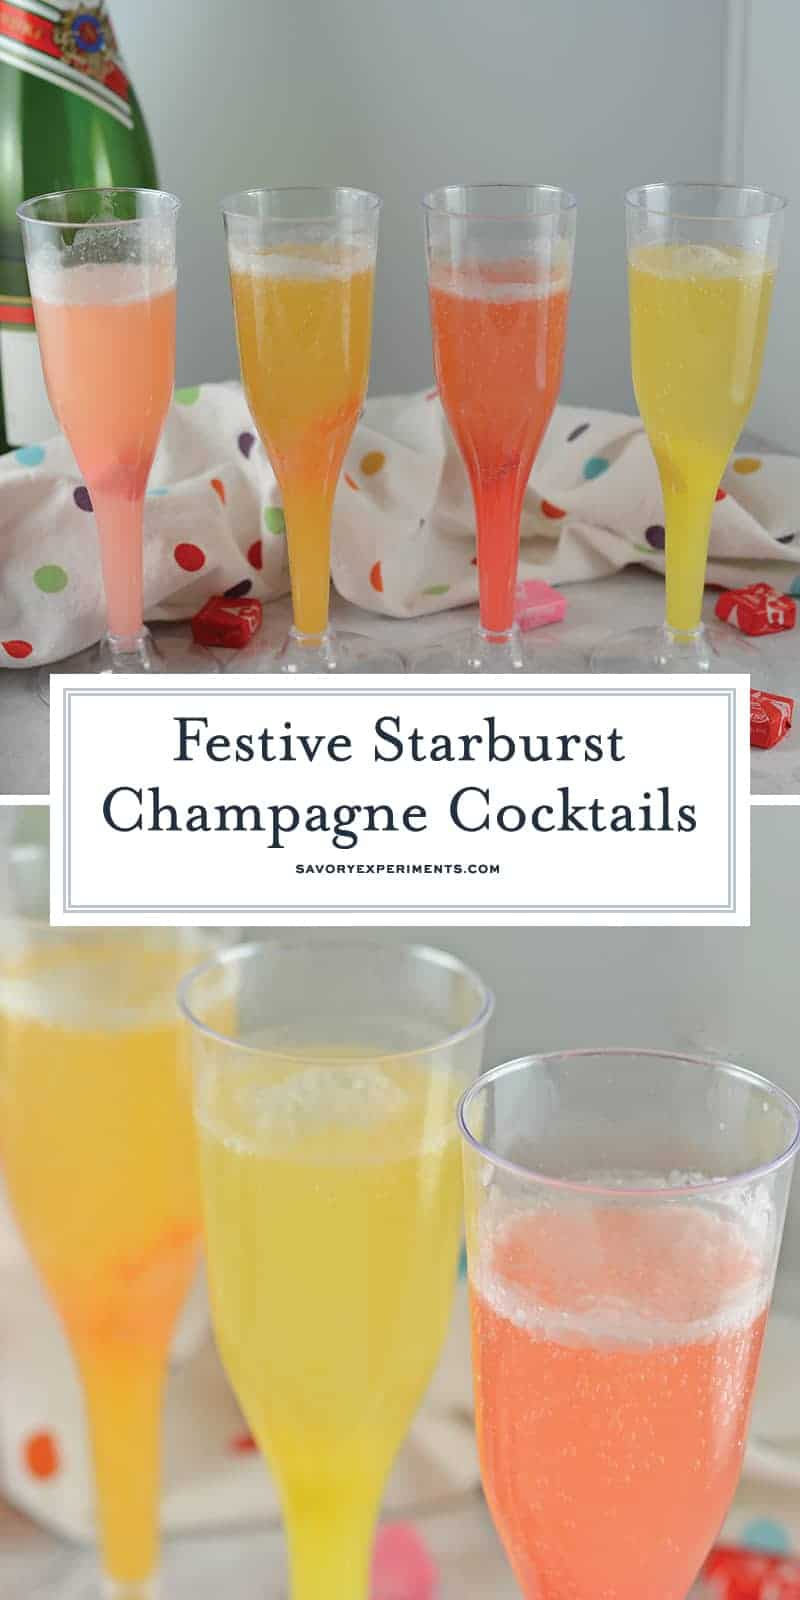 Starburst Champagne Cocktails - A Fun And Tasty Mocktail Recipe